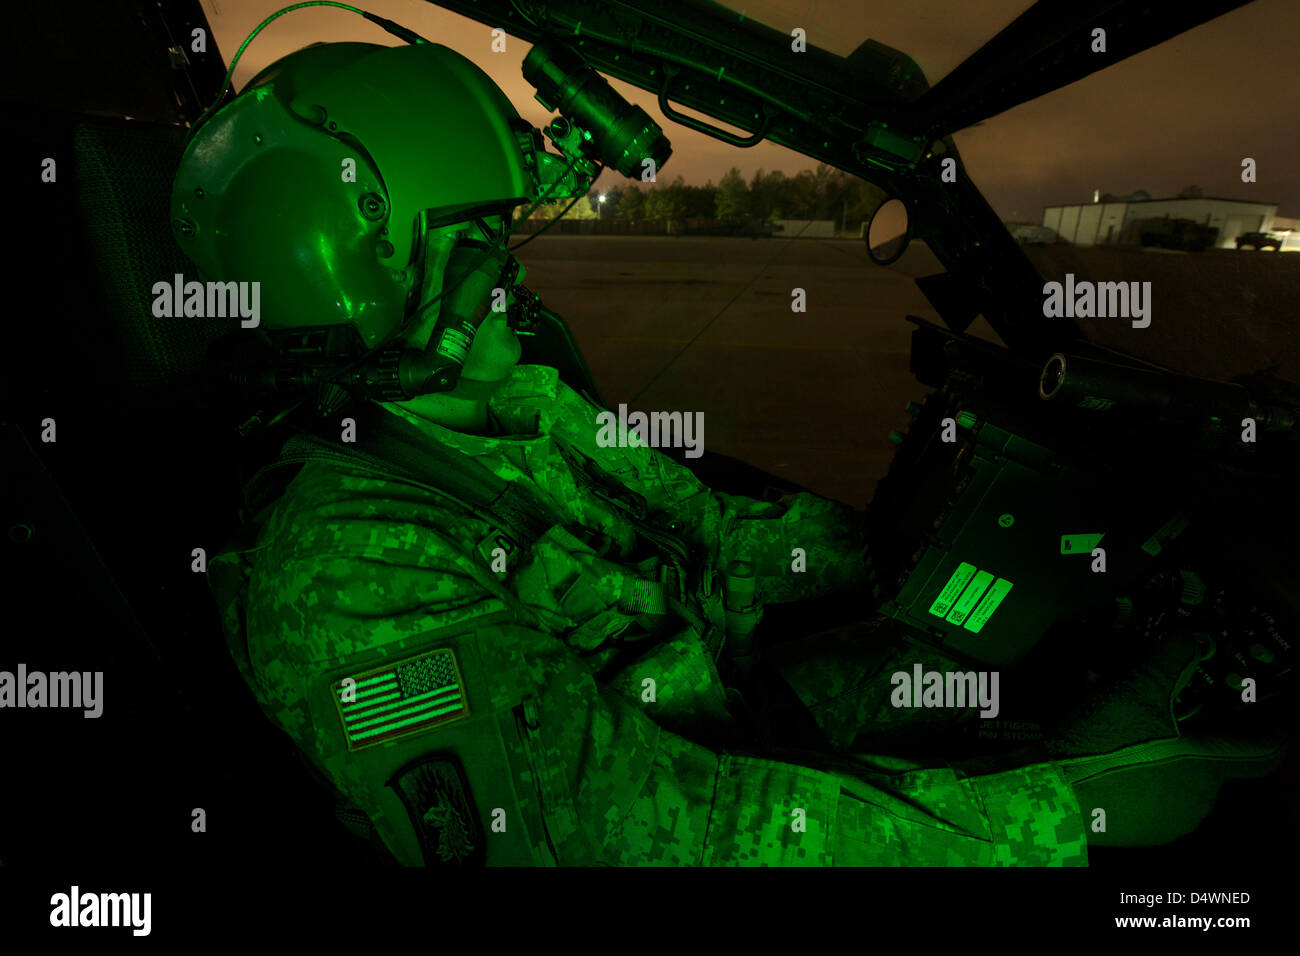 A pilot equipped with night vision goggles in the cockpit of an AH-64 Apache helicopter. - Stock Image